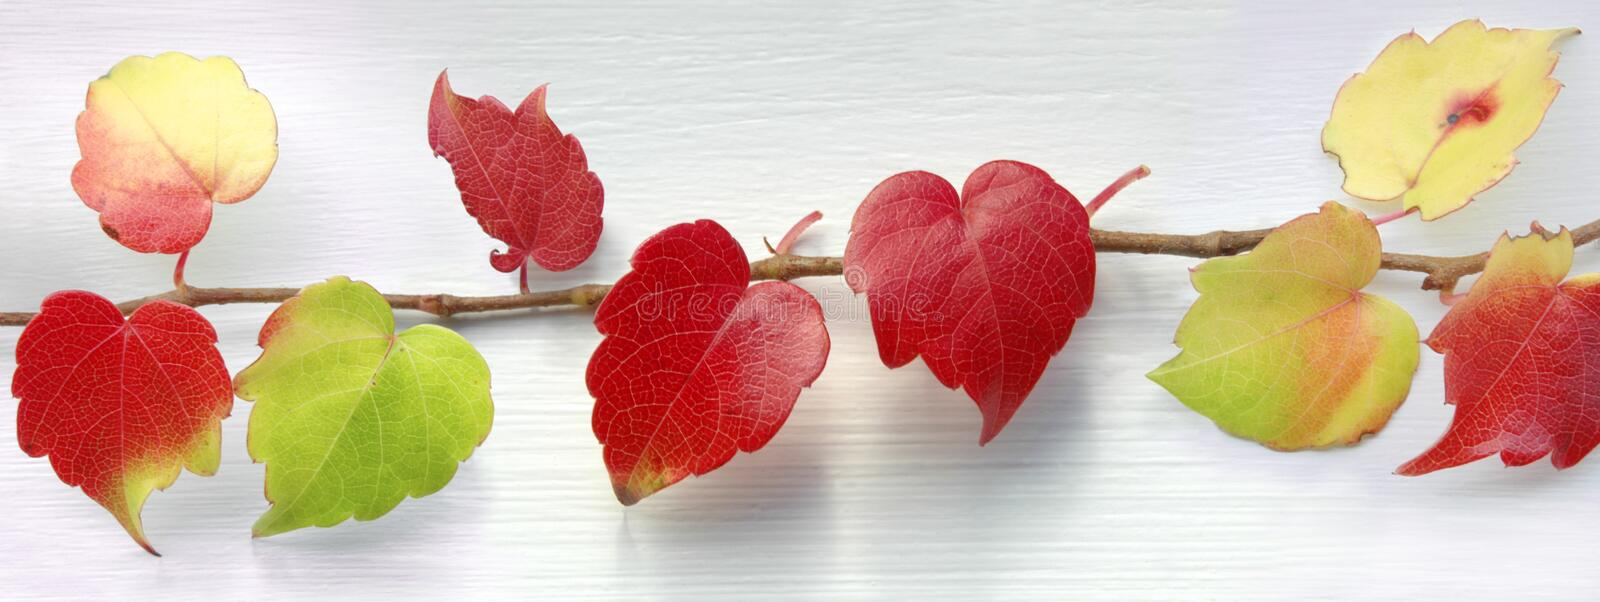 Coeurs rouges photographie stock